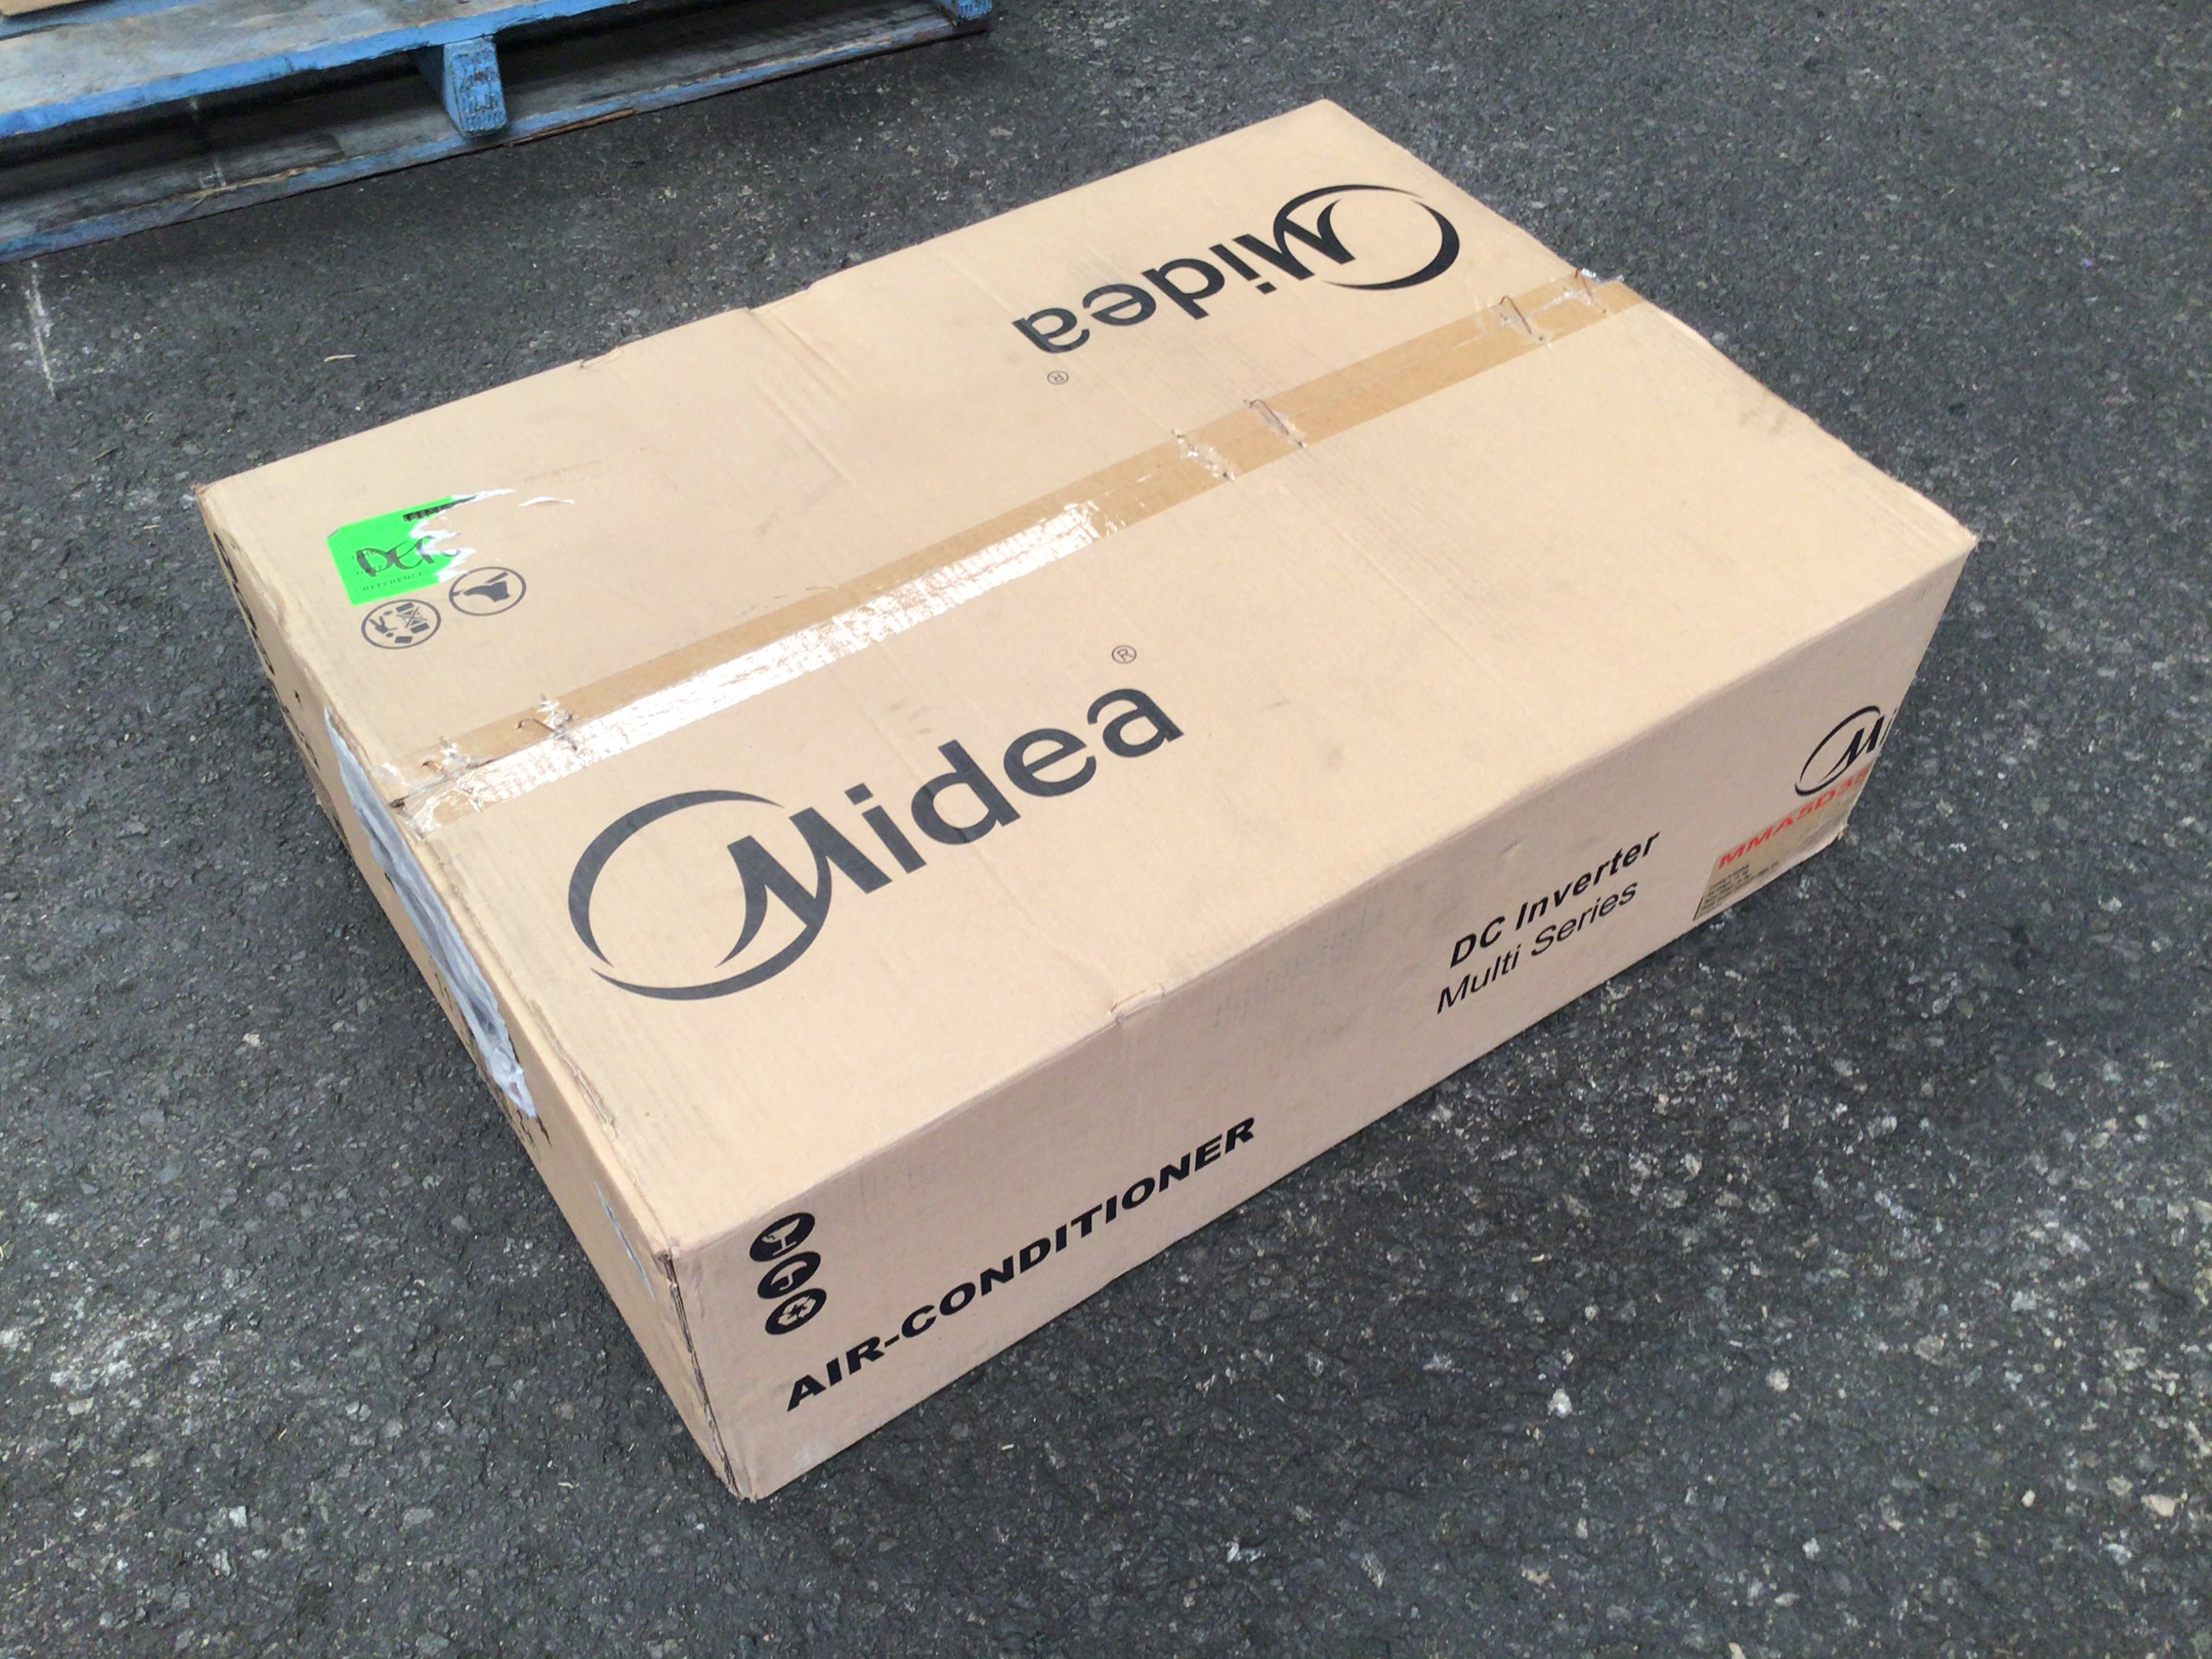 Midea MMA5D35 multi-head ducted air conditioning system.